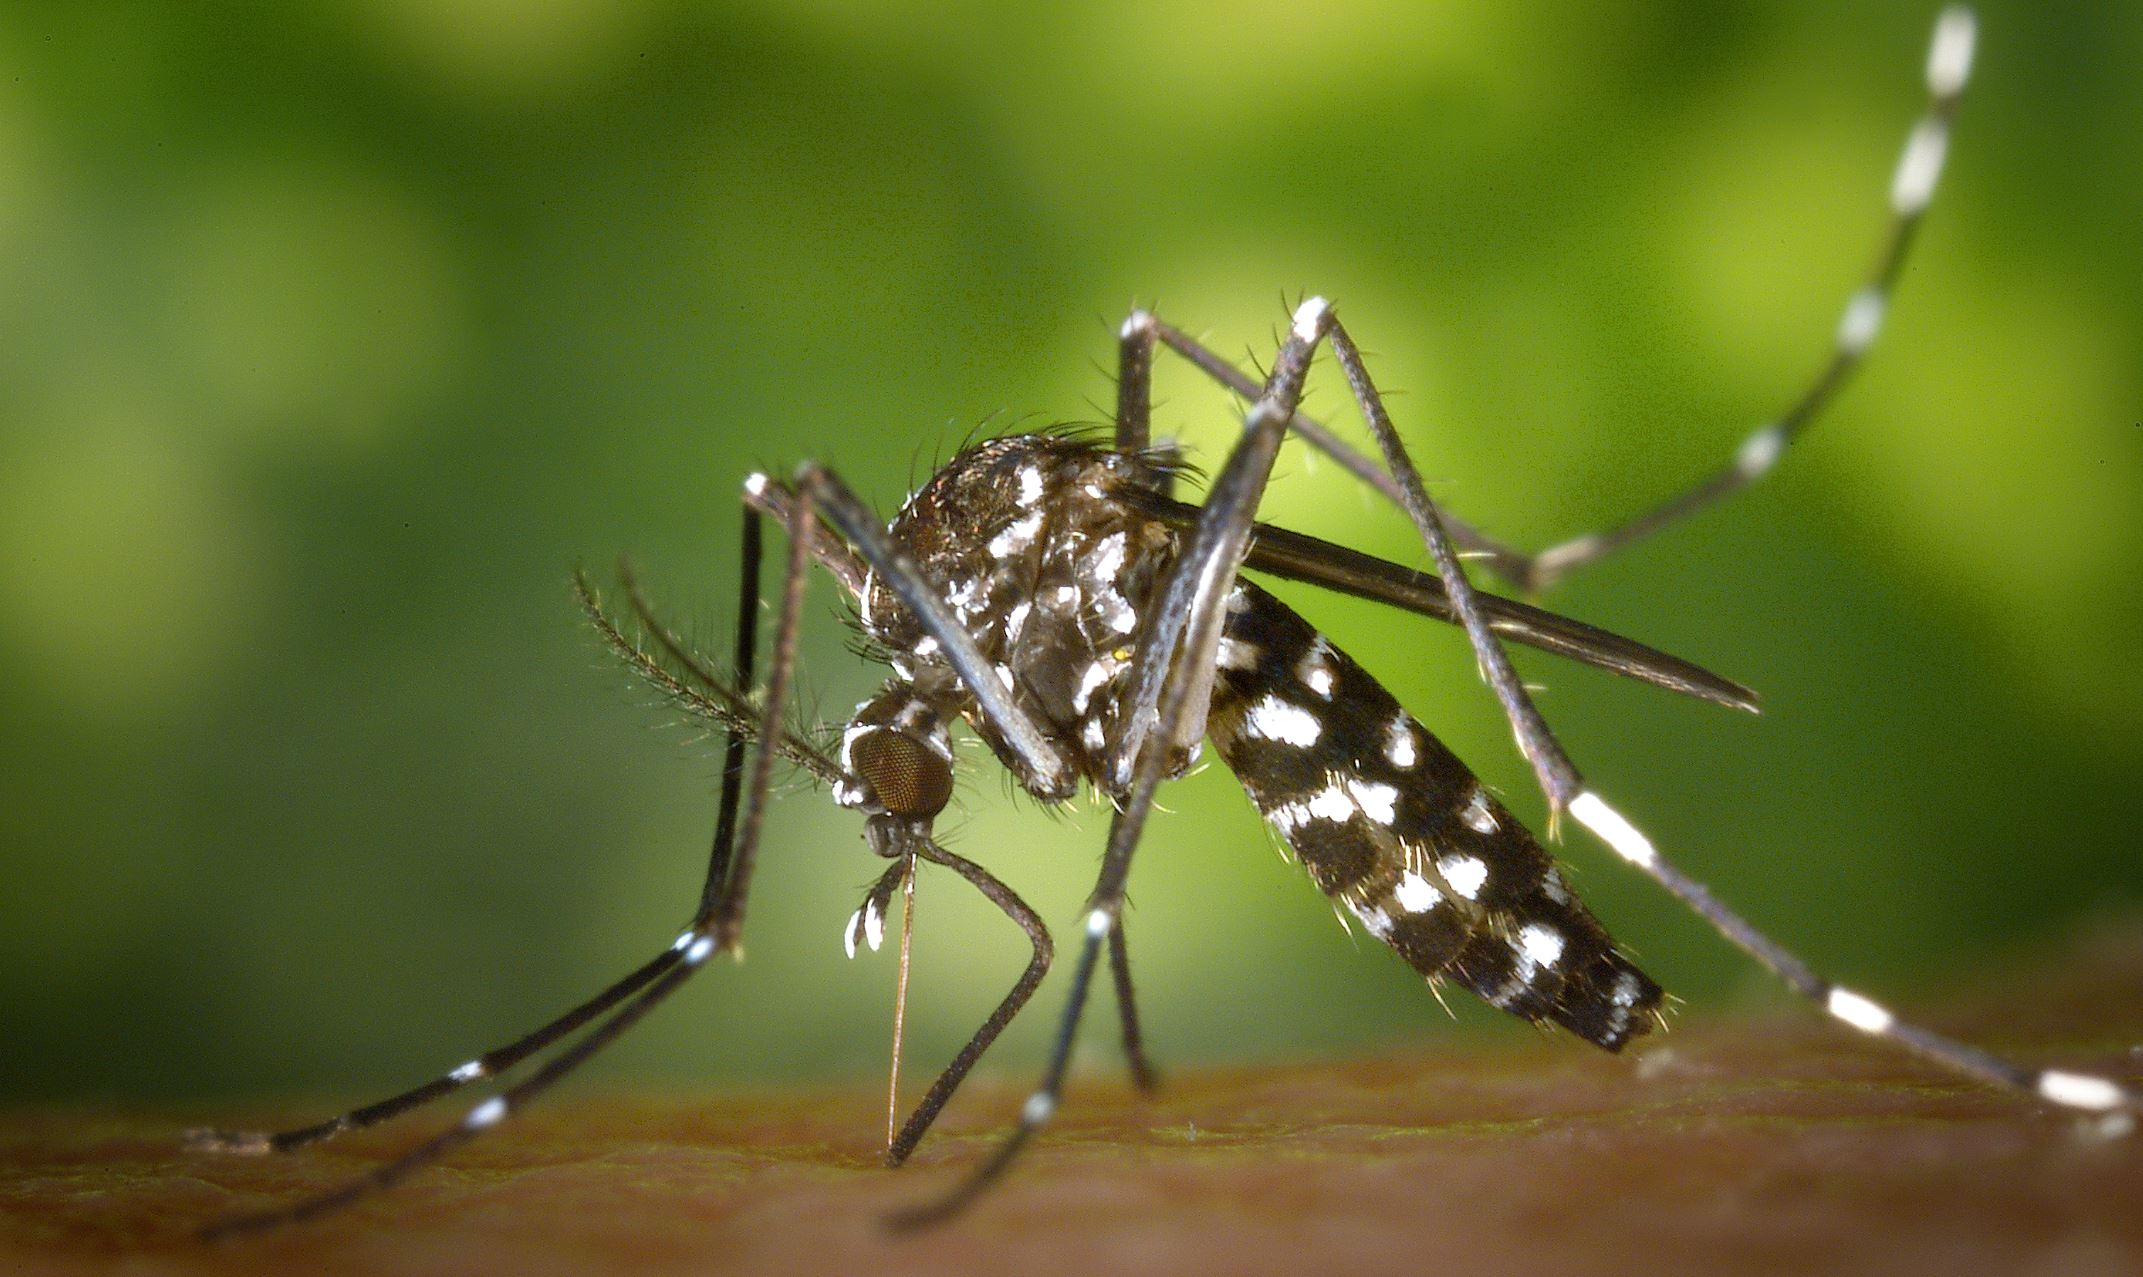 The Asian tiger mosquito has been genetically altered in lab experiments with CRISPR technology in an attempt to limit the spread of disease. - Image Credit:  CDC via Wikimedia Commons